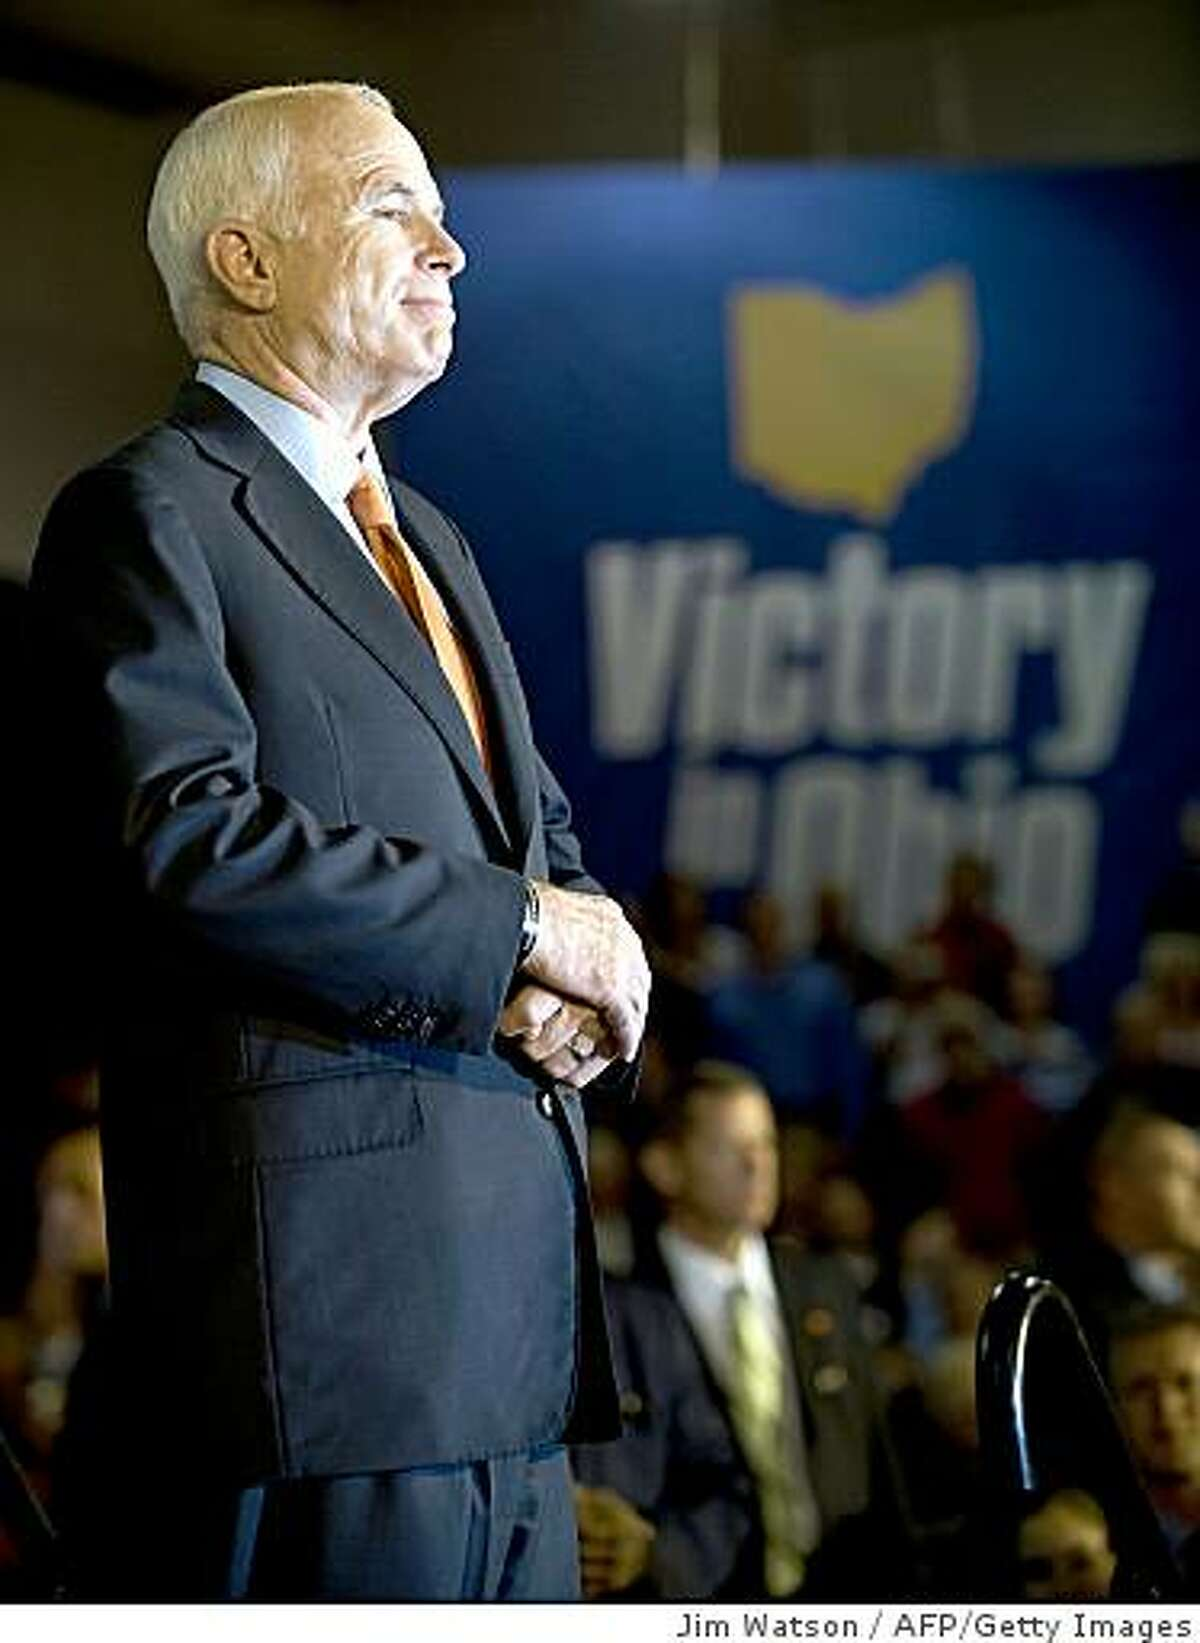 Presidential candidate John McCain listens during a rally at Lehigh University in Bethlehem, Pa., on Oct. 8, 2008.